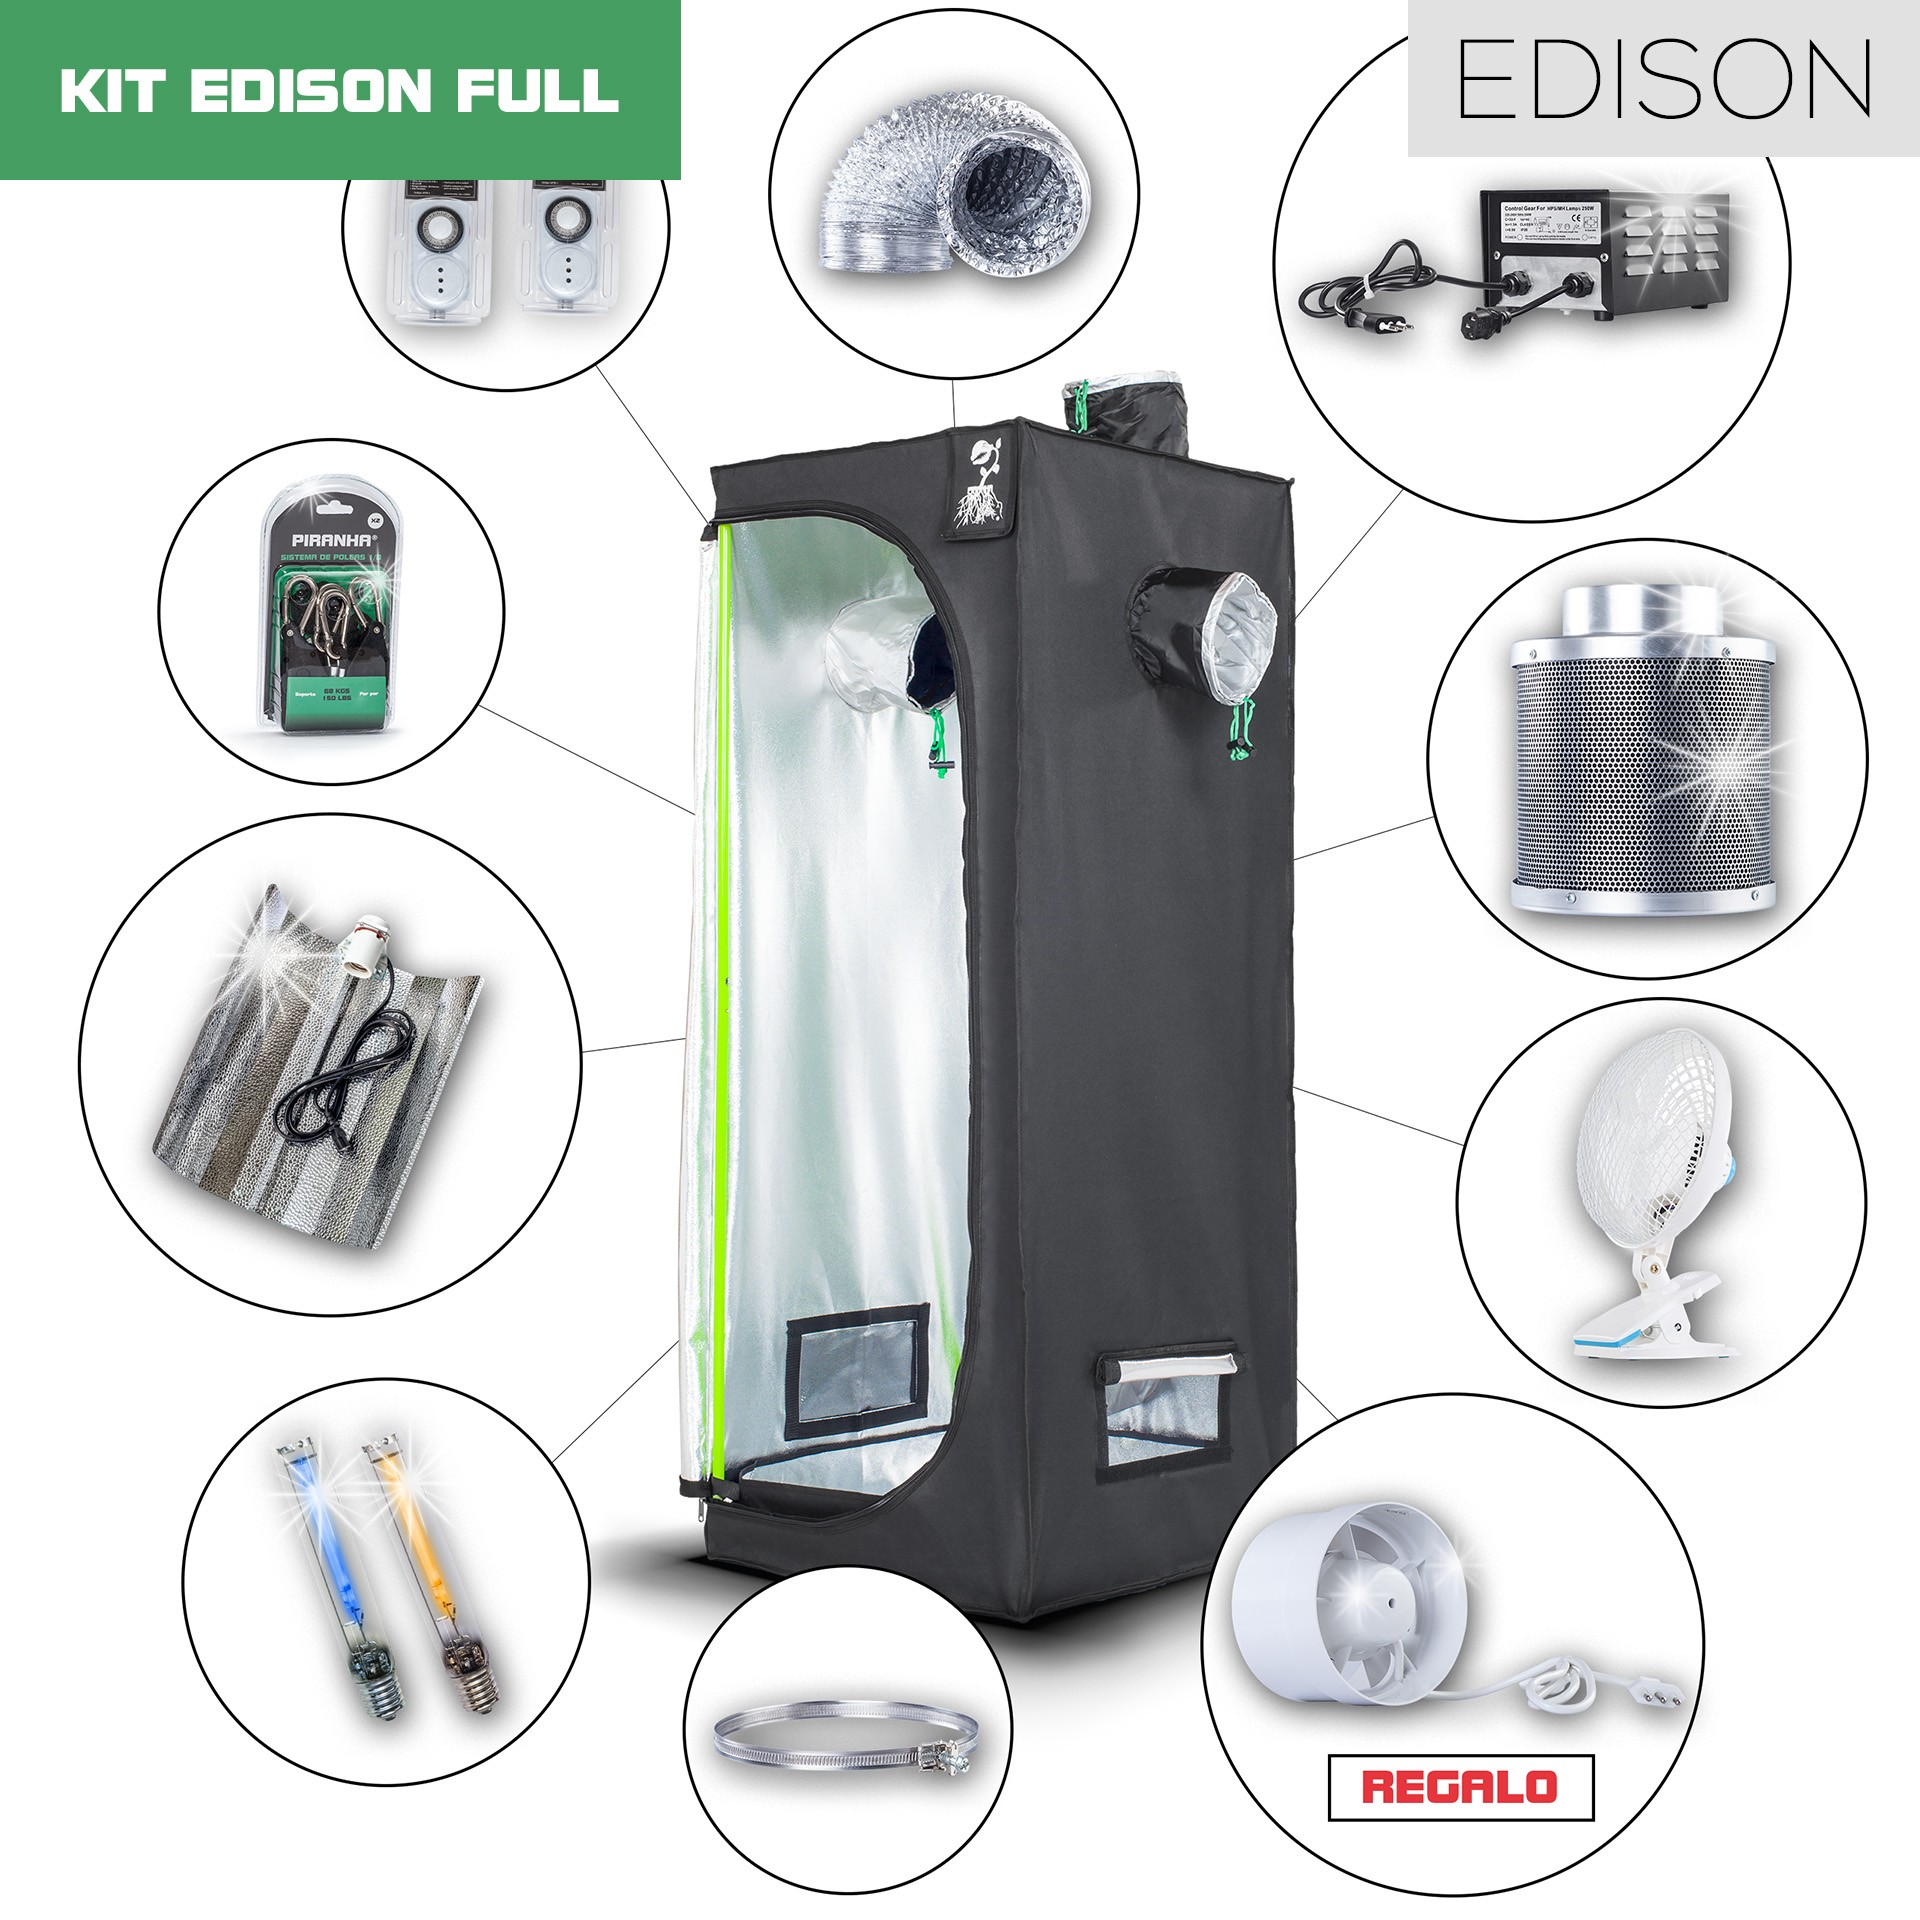 Kit Edison 60 - 250W Full